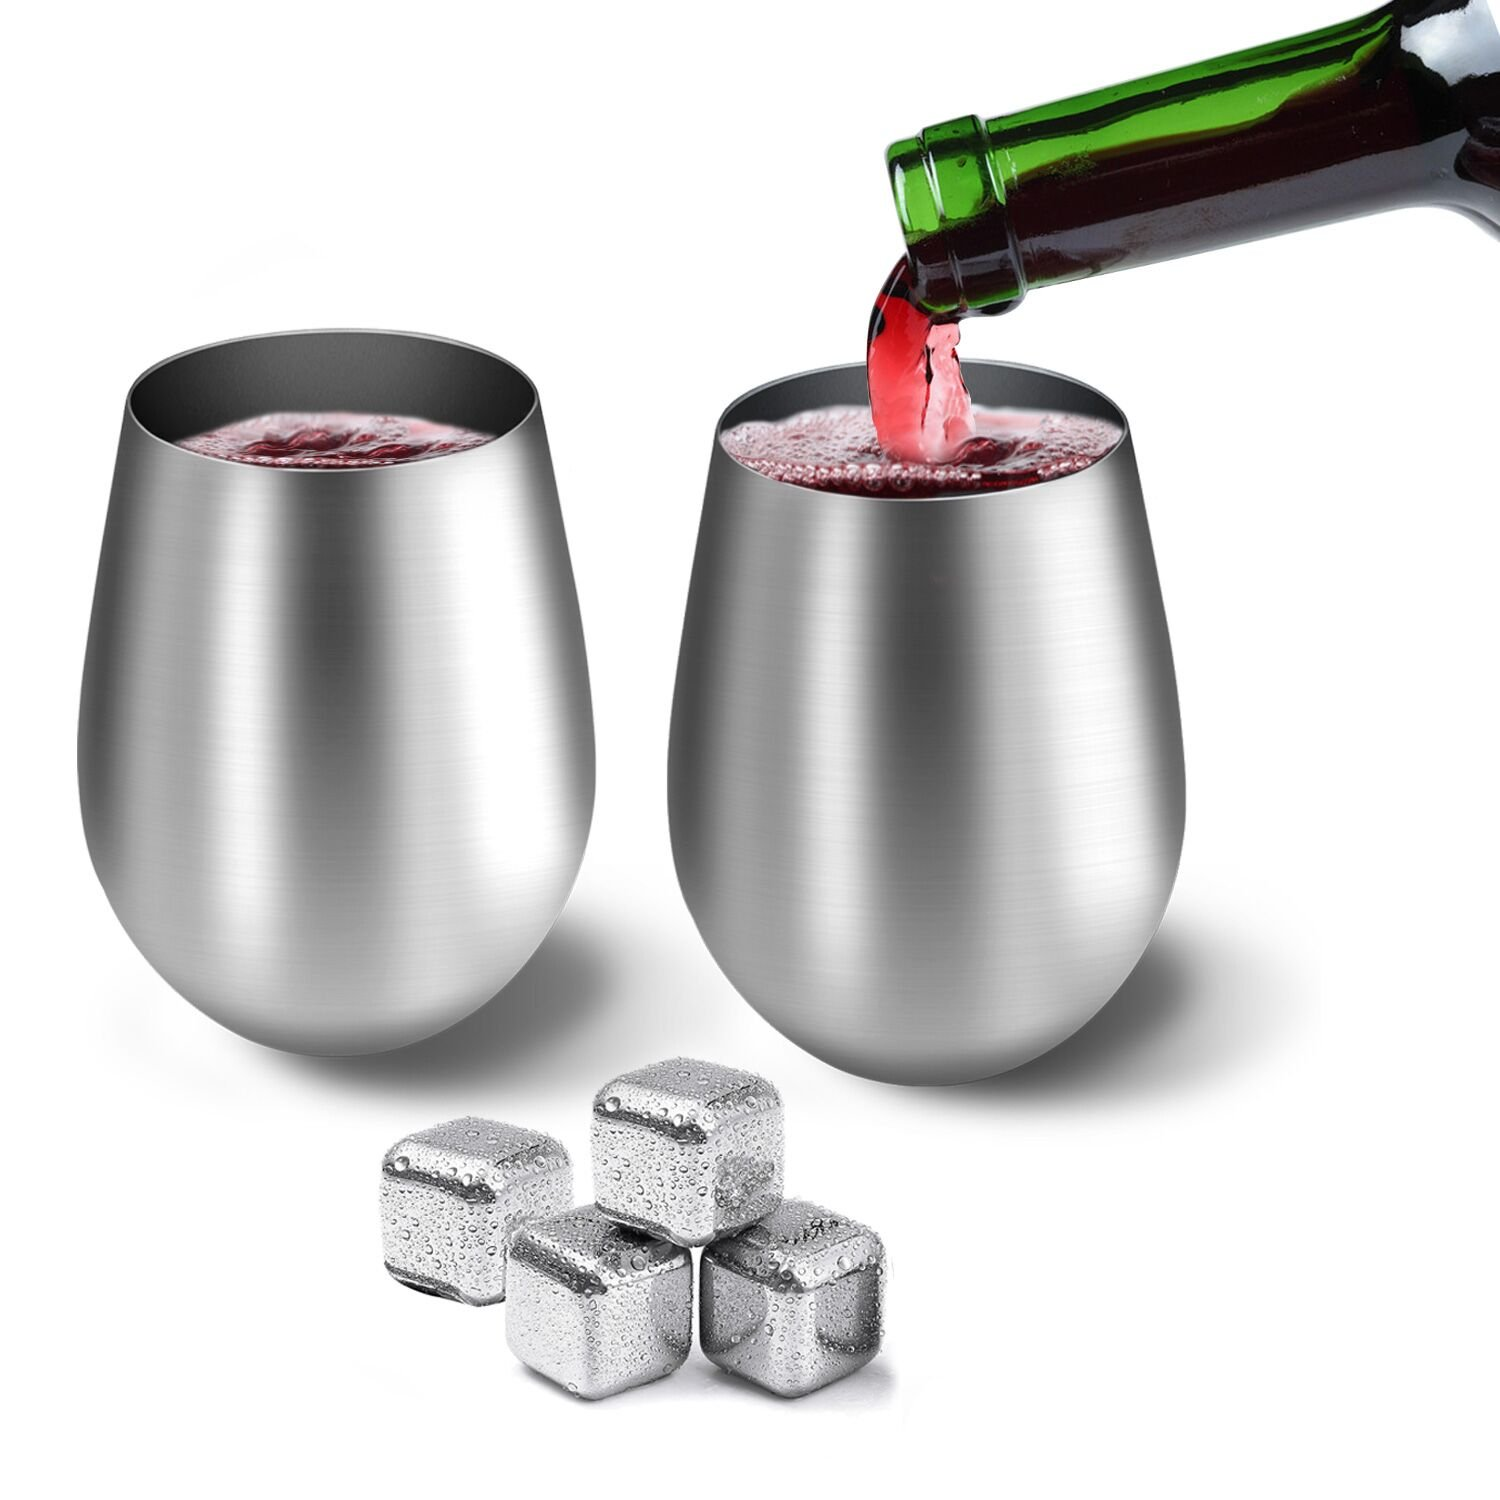 Stainless Steel Wine Glasses 20 oz HOMESTEC Premium Grade 18/8 (Set of 2) Unbreakable Stainless Steel Wine Cups for Daily & Outdoor Parties Picnic Events